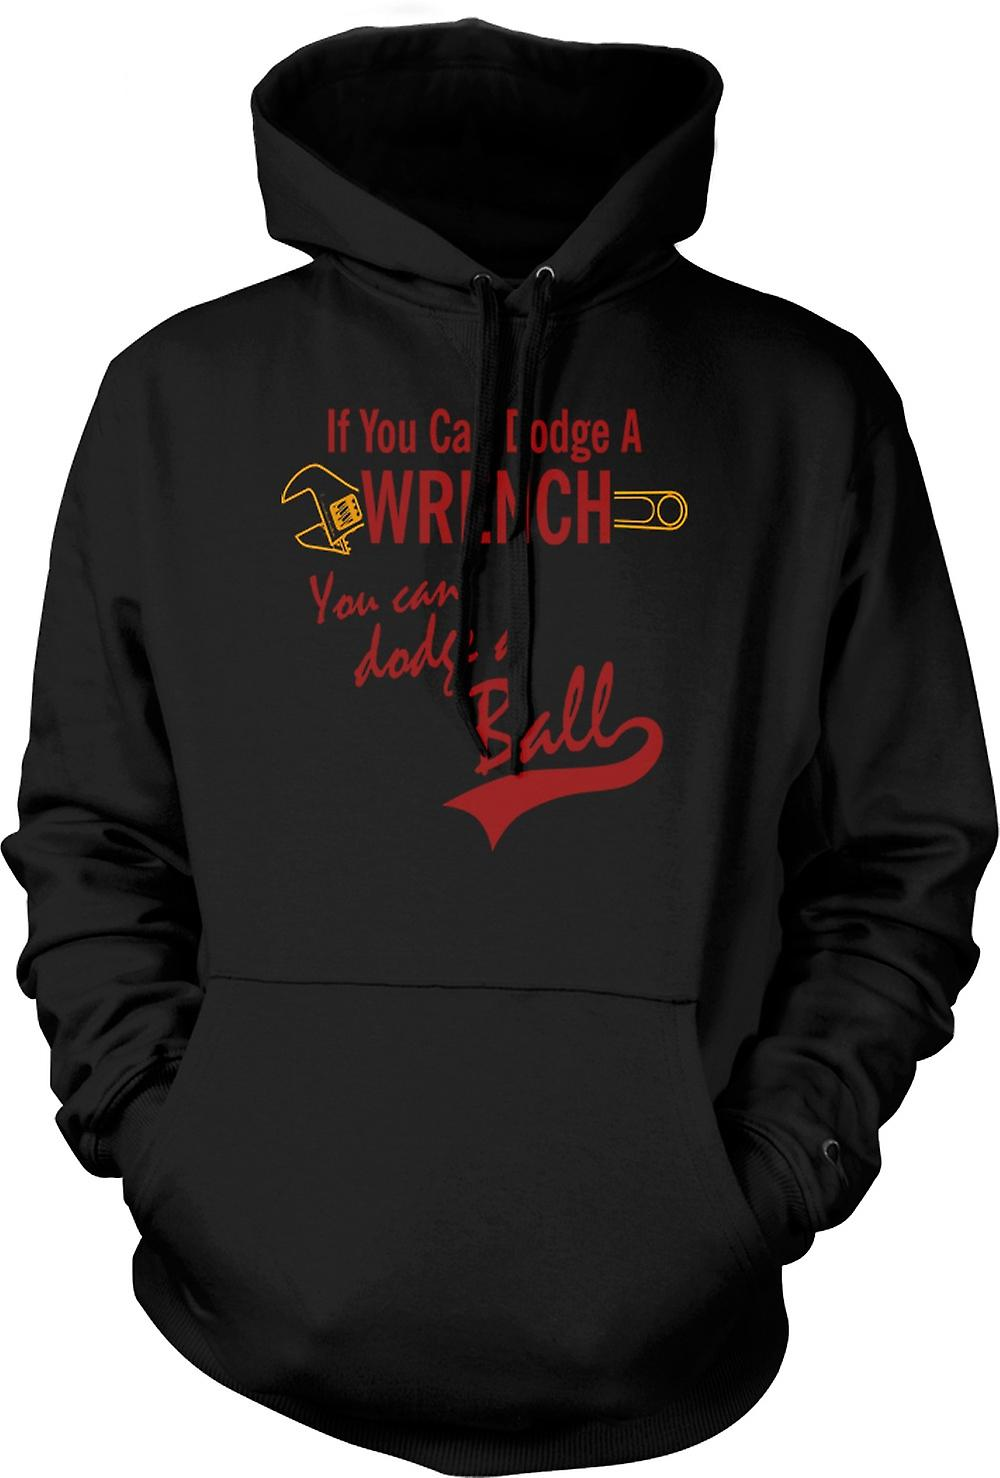 Mens Hoodie - Dodgeball Dodge A Wrench - Funny